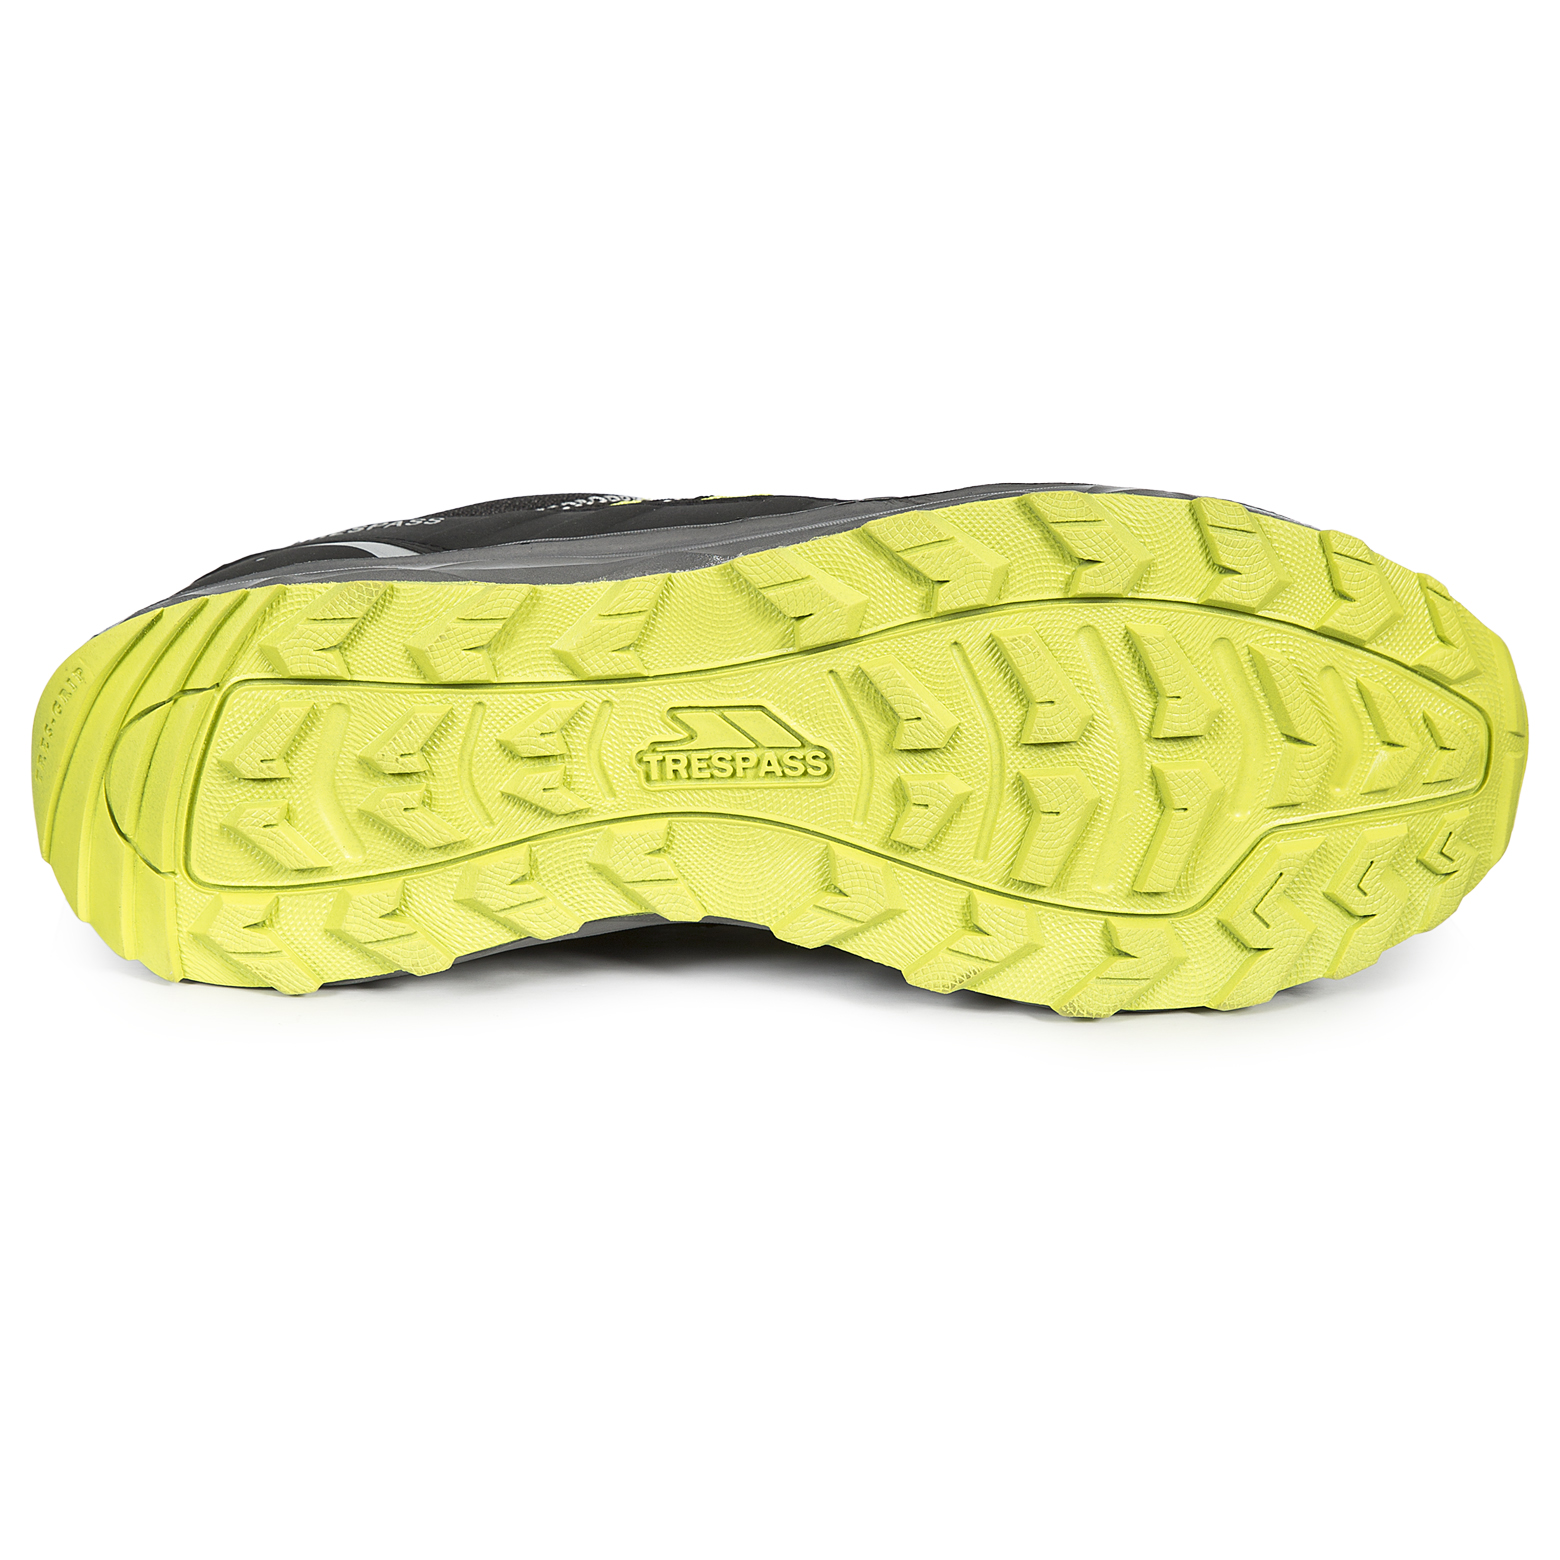 Trespass-Pace-Mens-Active-Trainers-Sports-Lace-Up-Shoes thumbnail 7